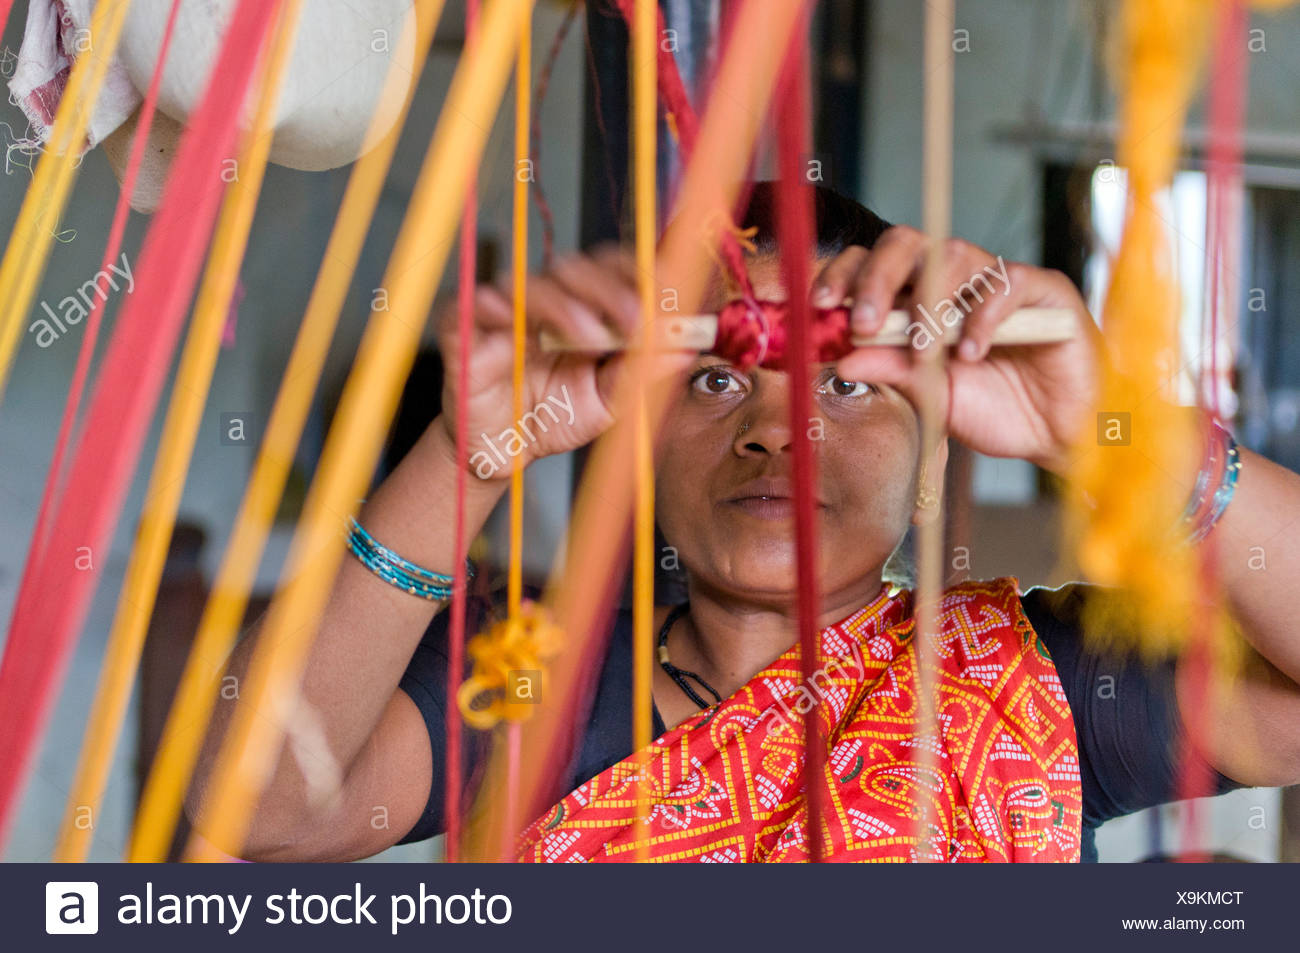 Weaver weaving, Ahilya Fort, Maheshwar, Madhya Pradesh, India, Asia Stock Photo